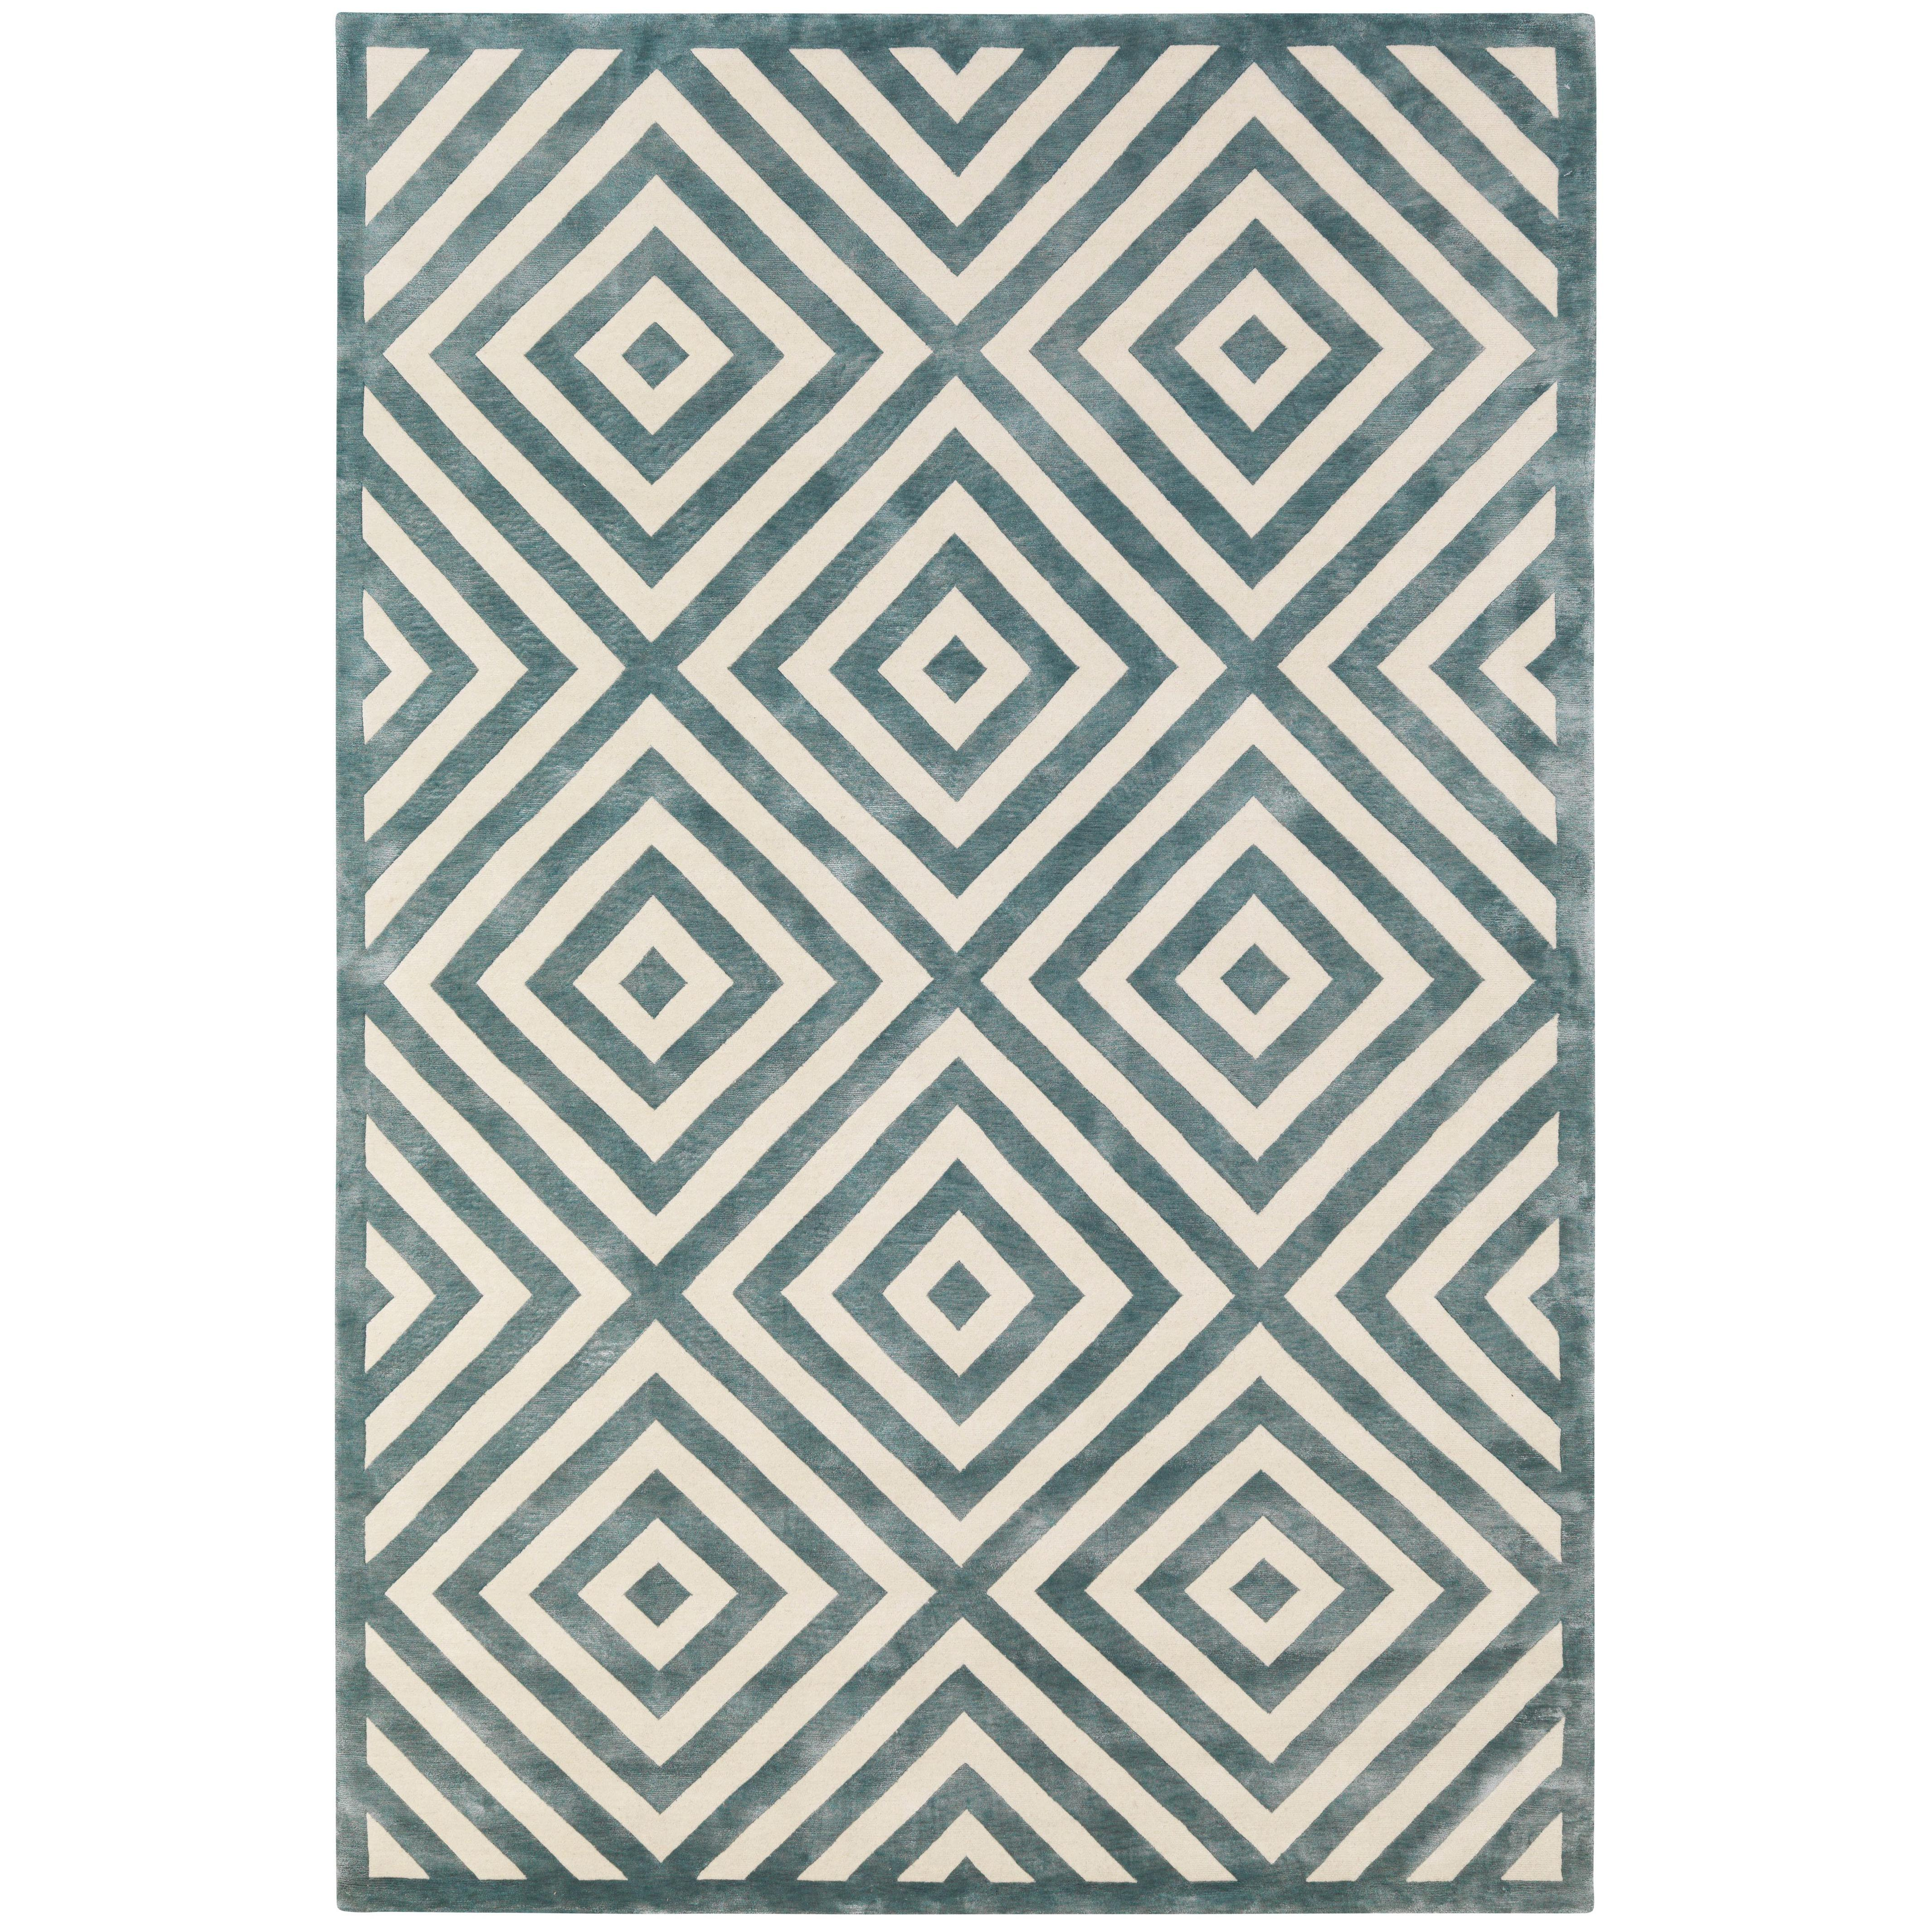 Calypso Hand-Knotted 10x8 Rug in Wool and Silk by Suzanne Sharp